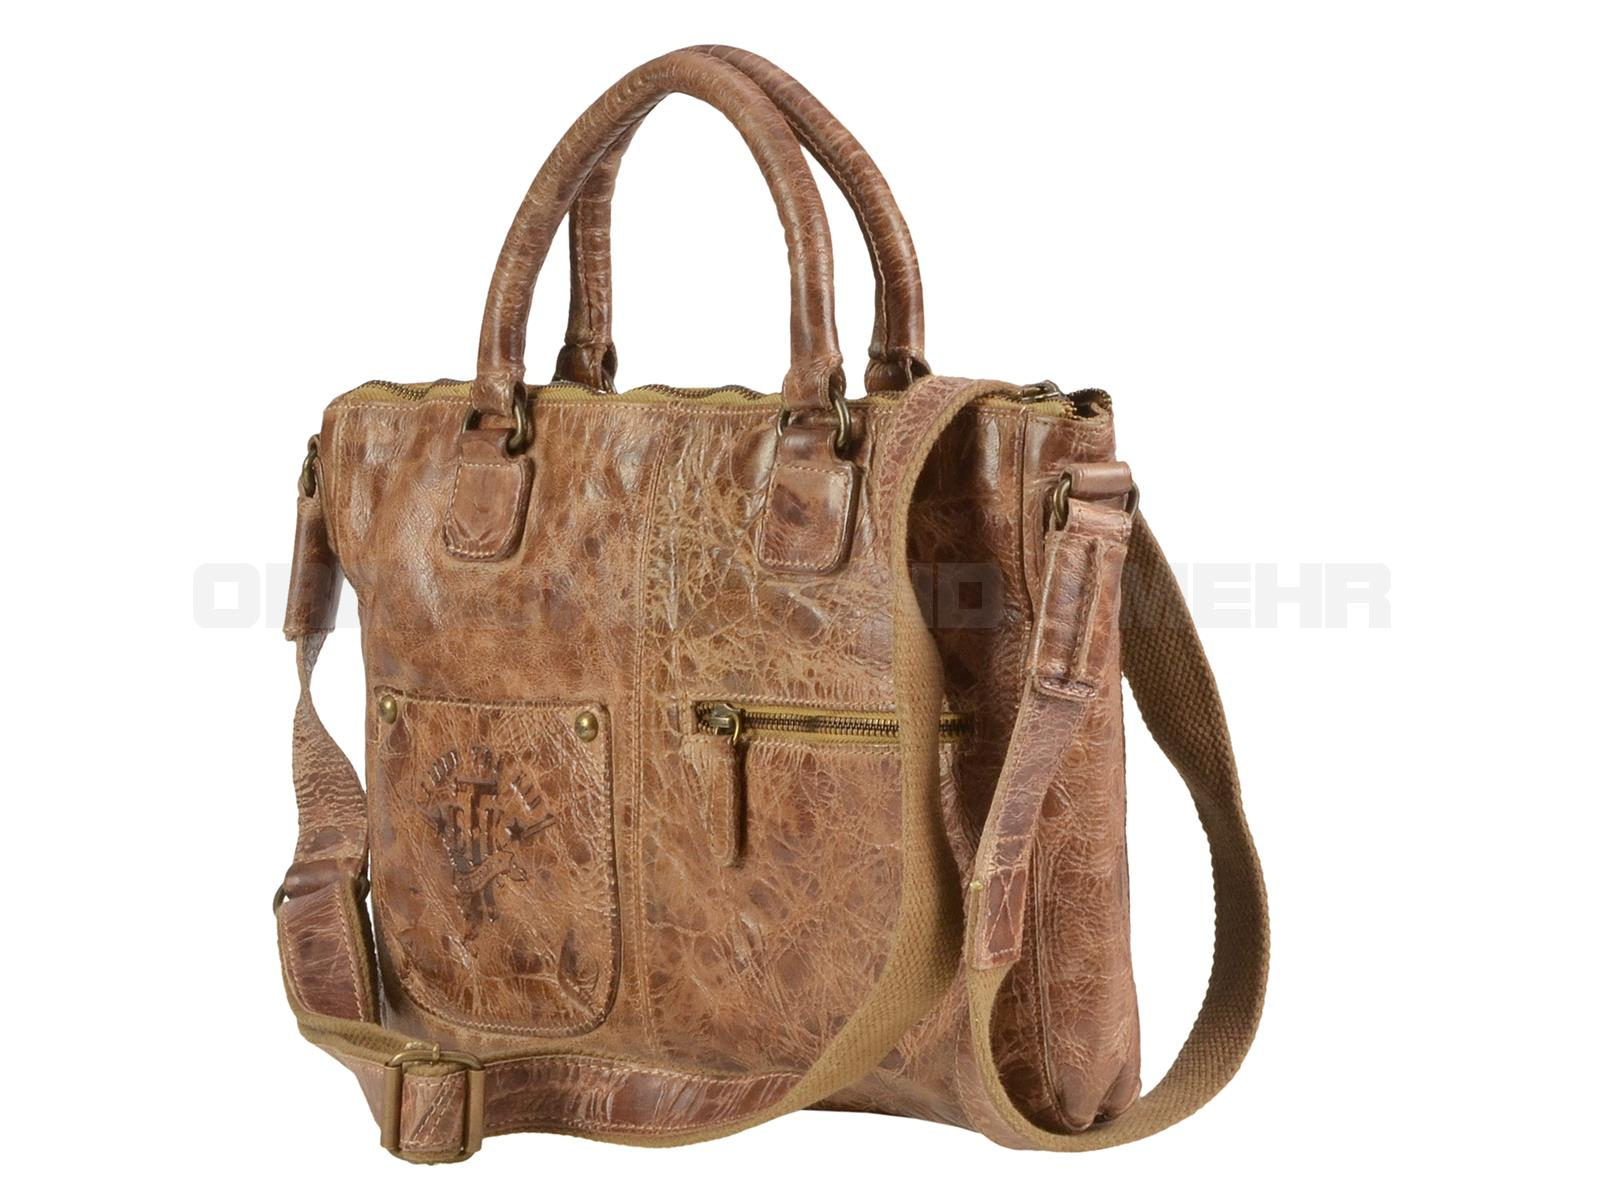 Billy the Kid Leder Shopper Damen in Multicolor M422-77 - Rückseite